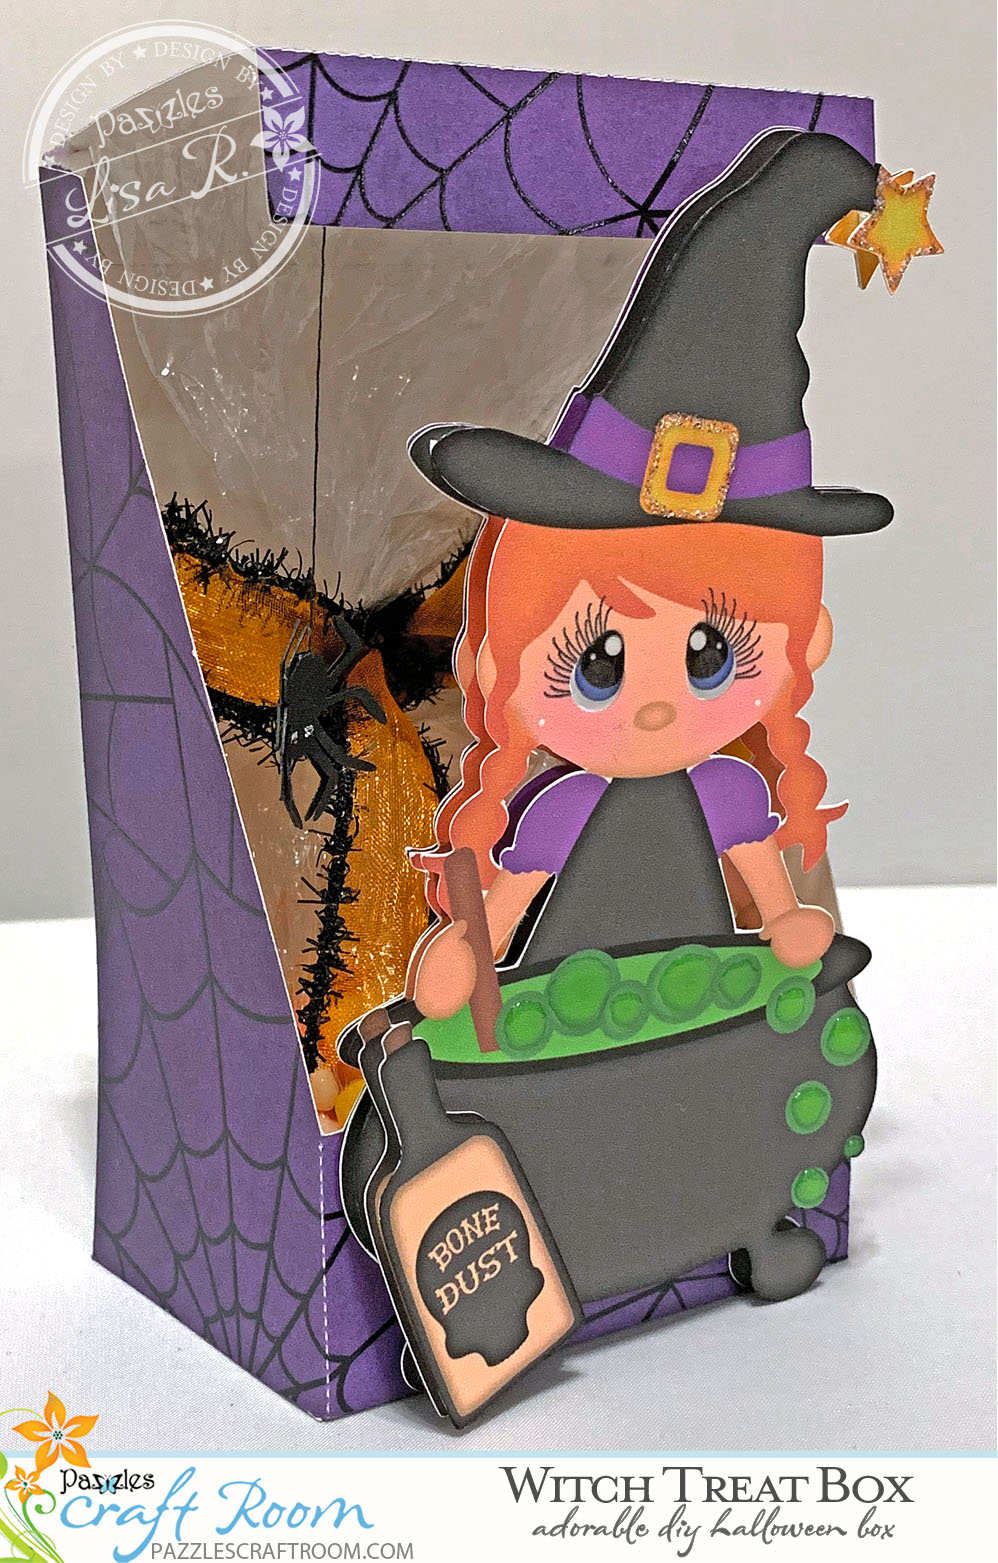 Pazzles DIY Halloween Witch Treat Box by Lisa Reyna